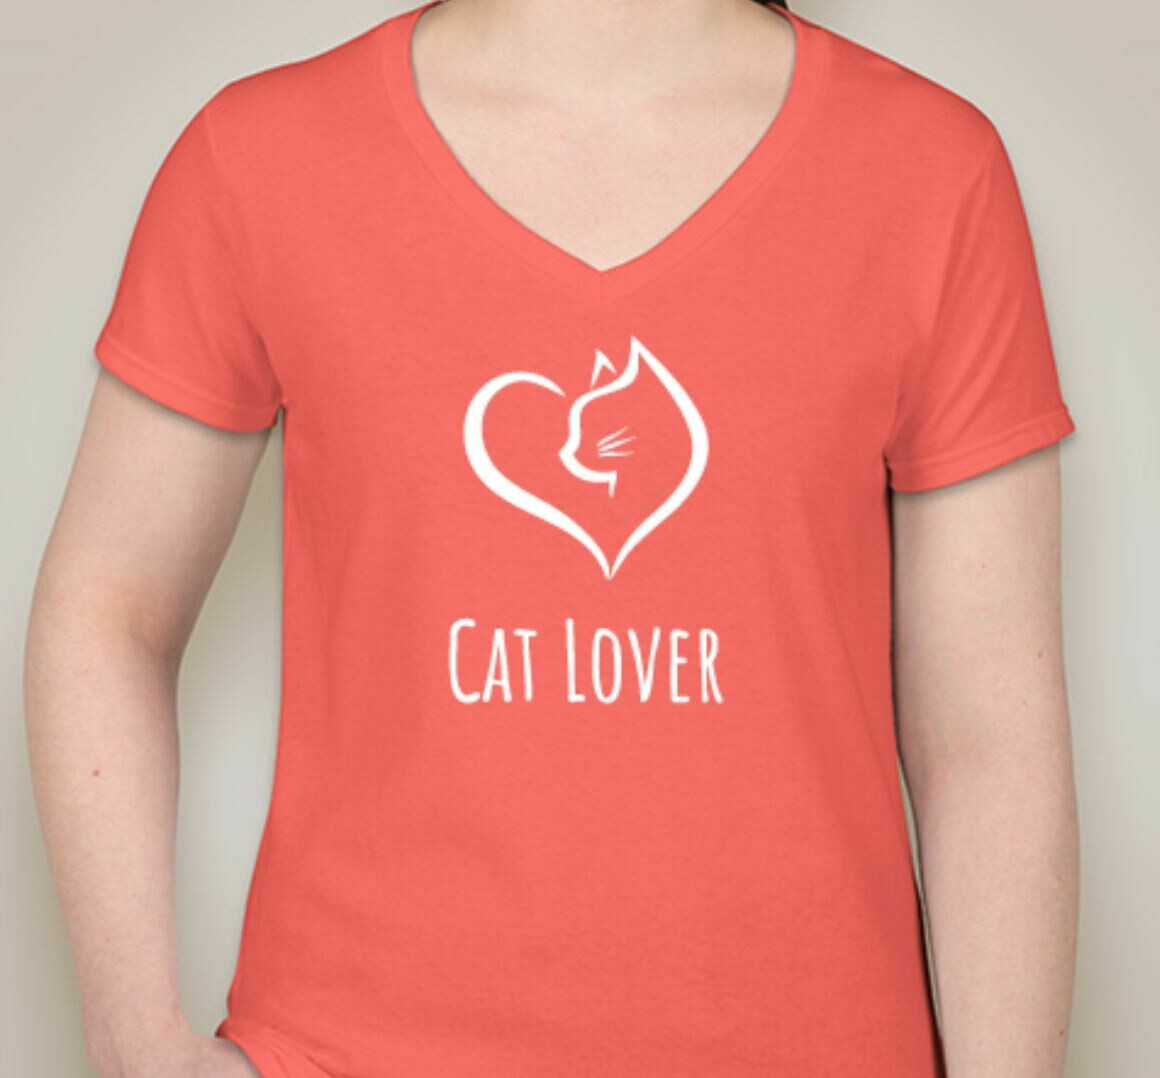 Cat Lover (Women) Coral